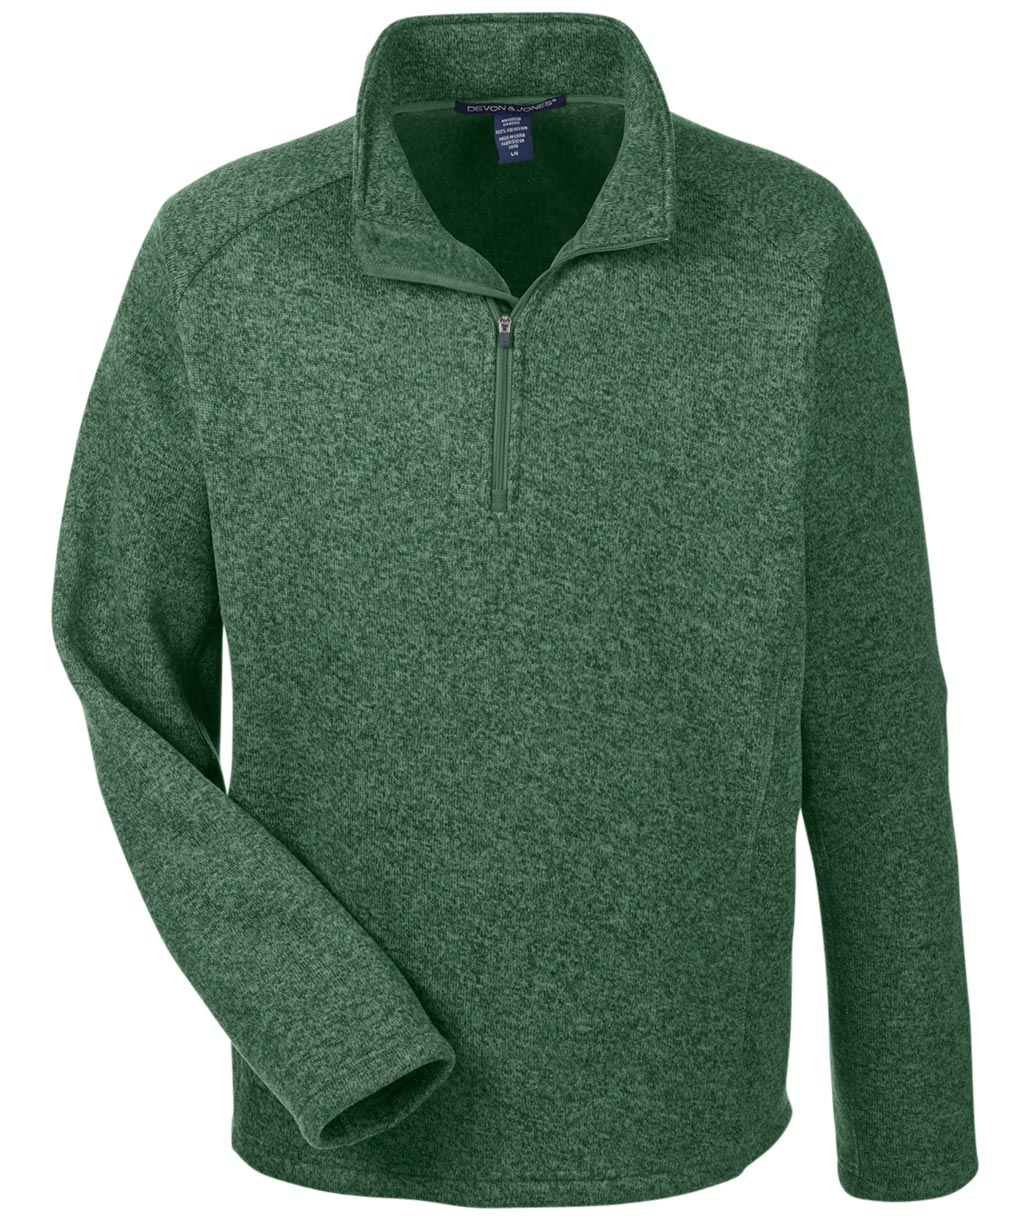 Devon & Jones Mens Bristol Quarter-Zip Sweater Fleece